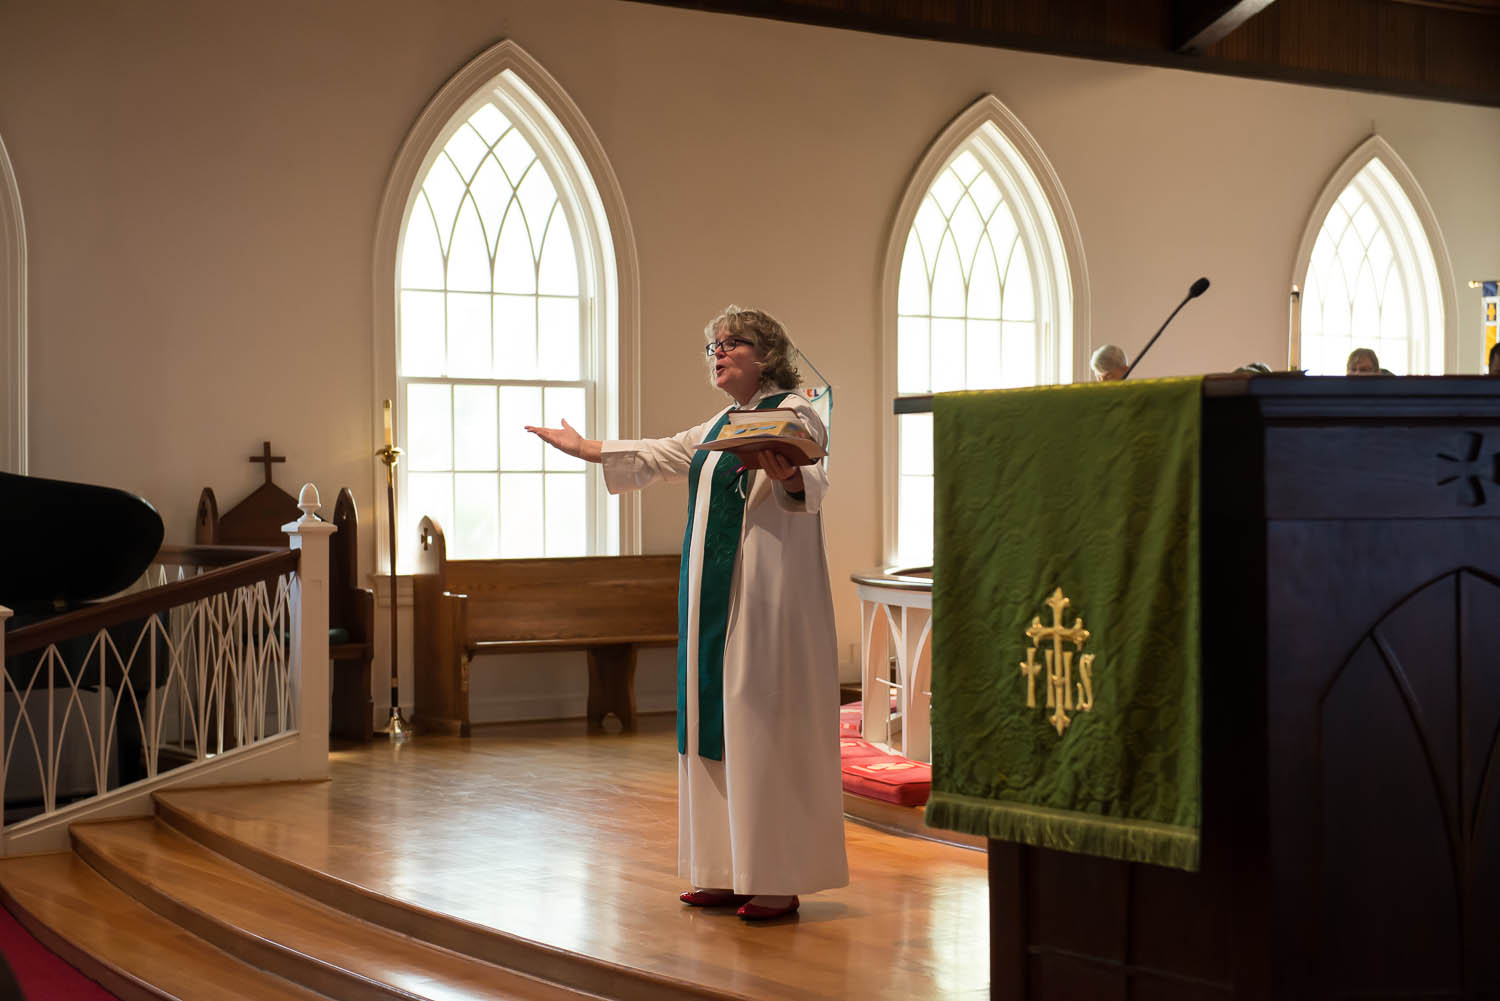 """Joani Peacock speaks to the congregation at Emmanuel Episcopal Church in Alexandria, Va., where she serves part-time as a priest associate Sunday, Sept. 28, 2014. Peacock writes a blog called """"Orthodox and Unhinged: Tales of a Manic Christian,"""" about her experience as a clergyperson with bipolar disorder."""